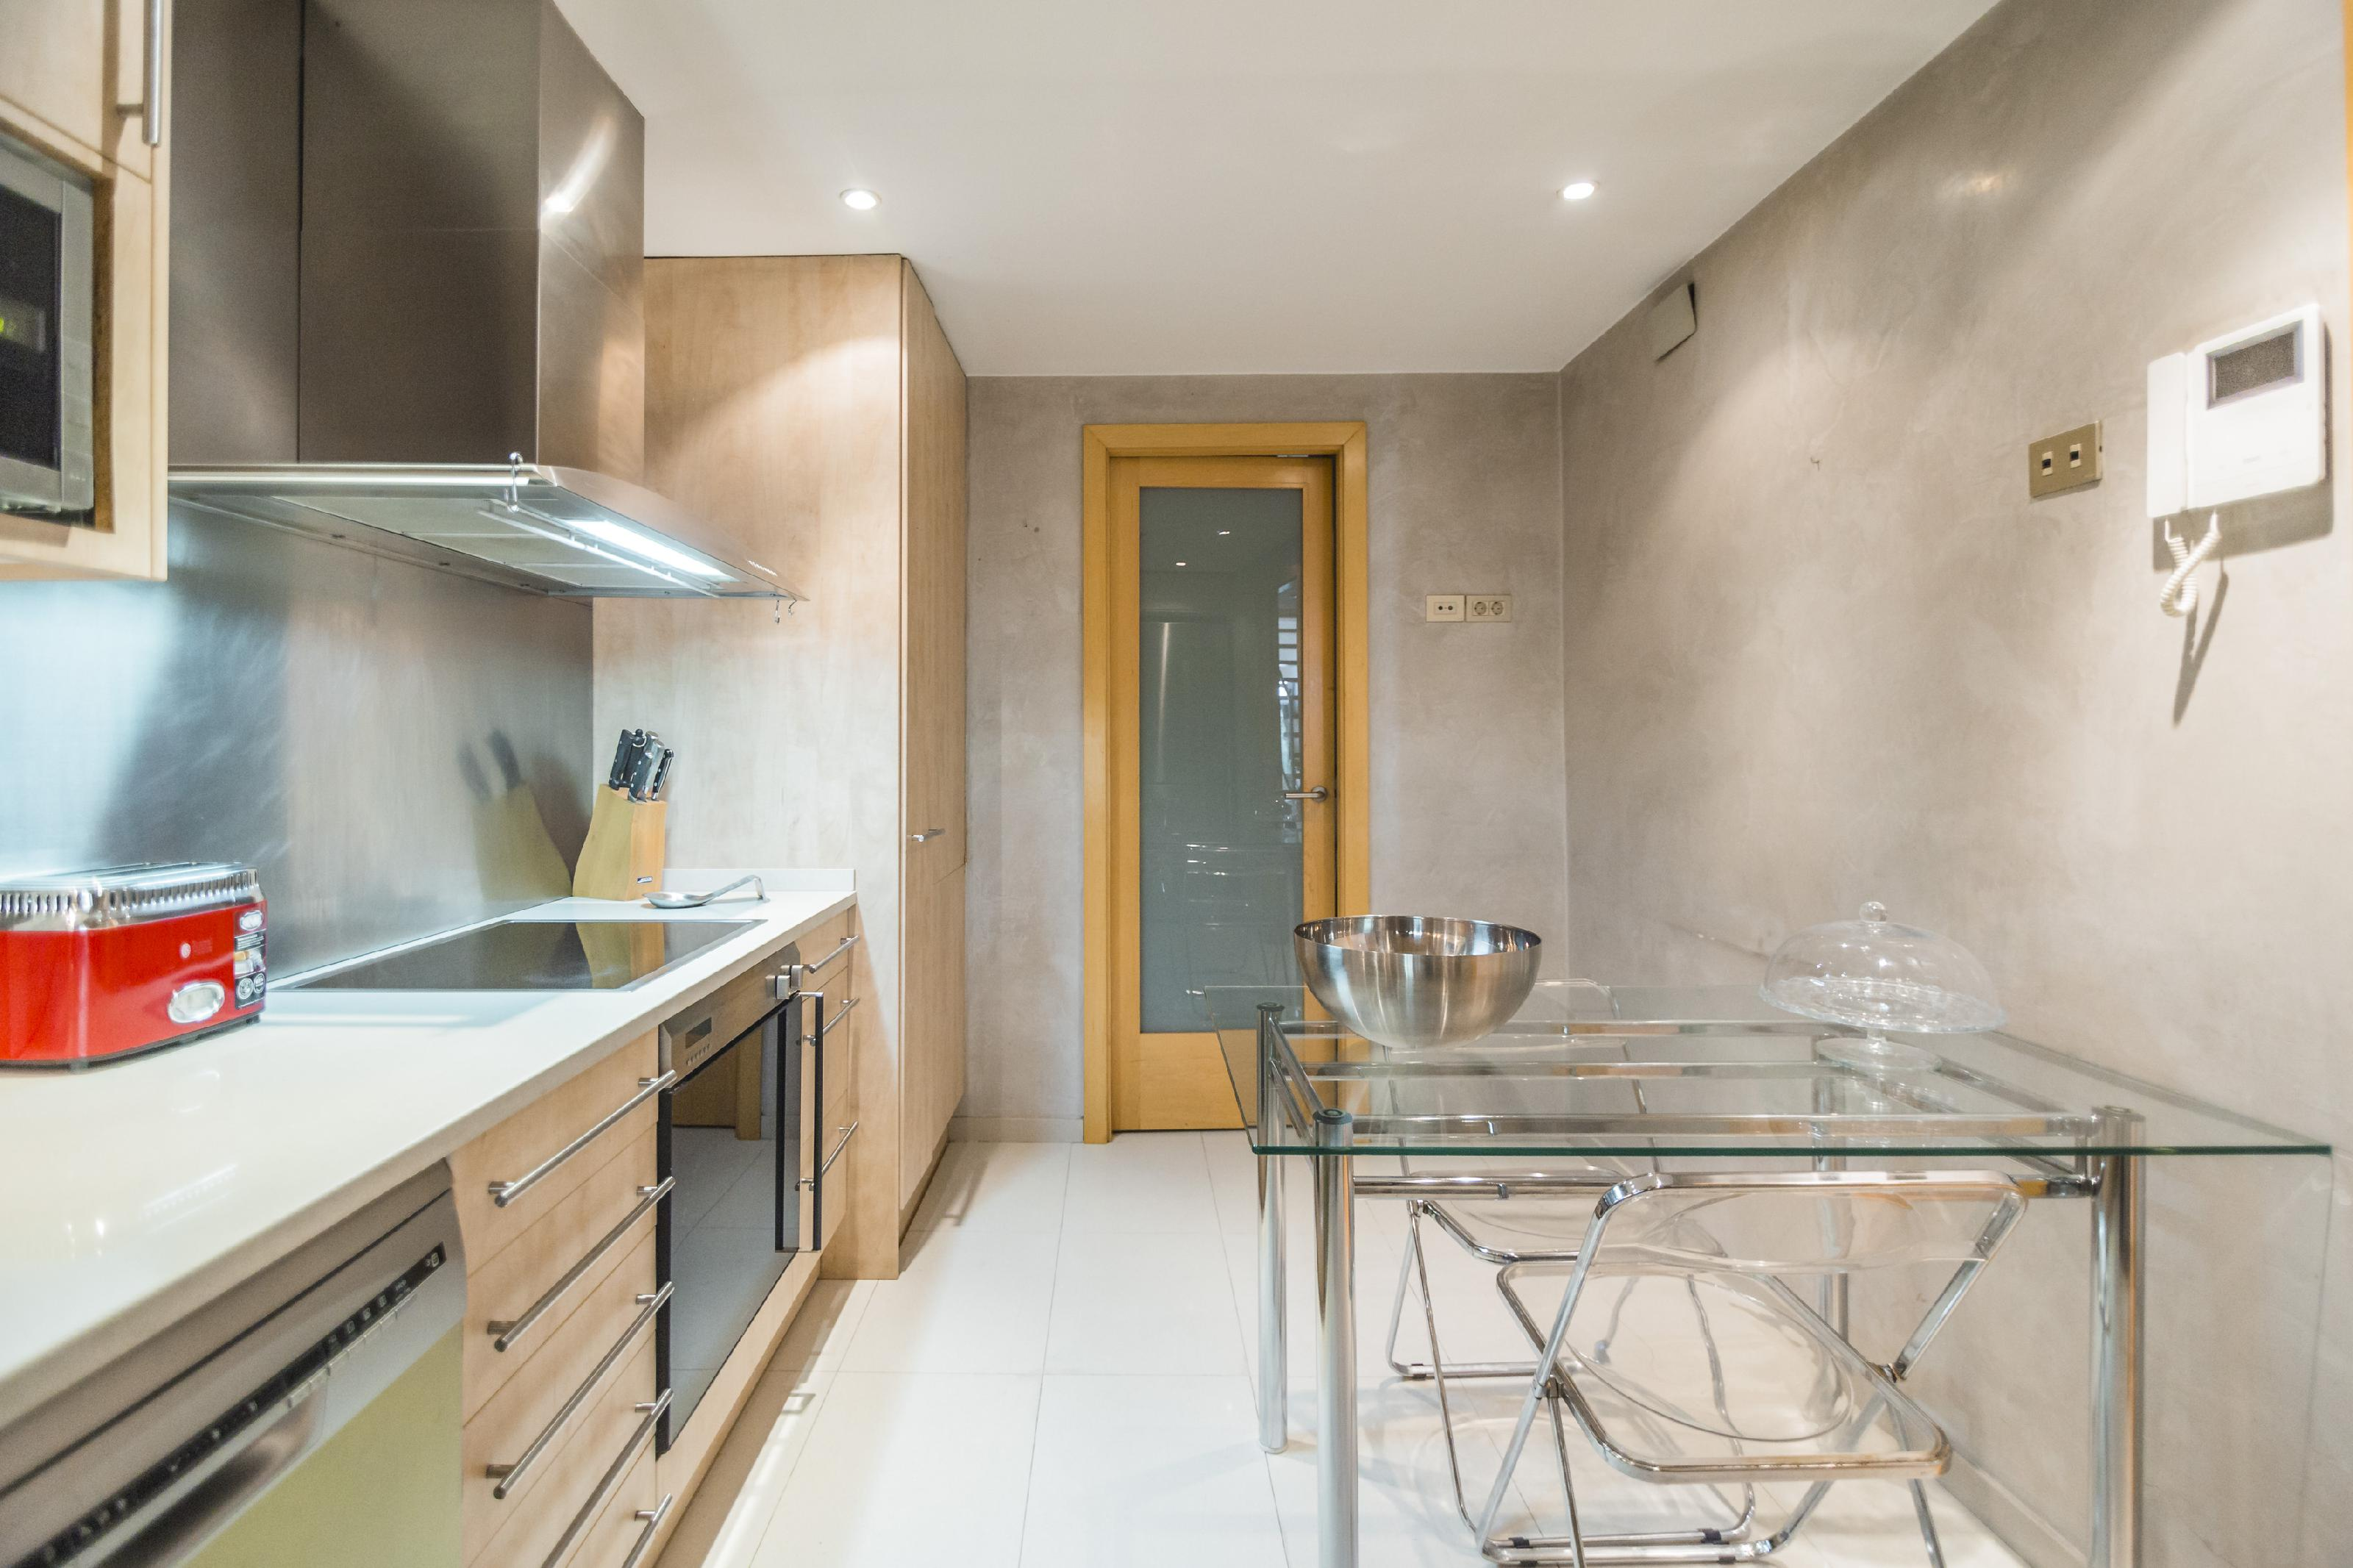 109651 Apartment for sale in Eixample, Dreta Eixample 29